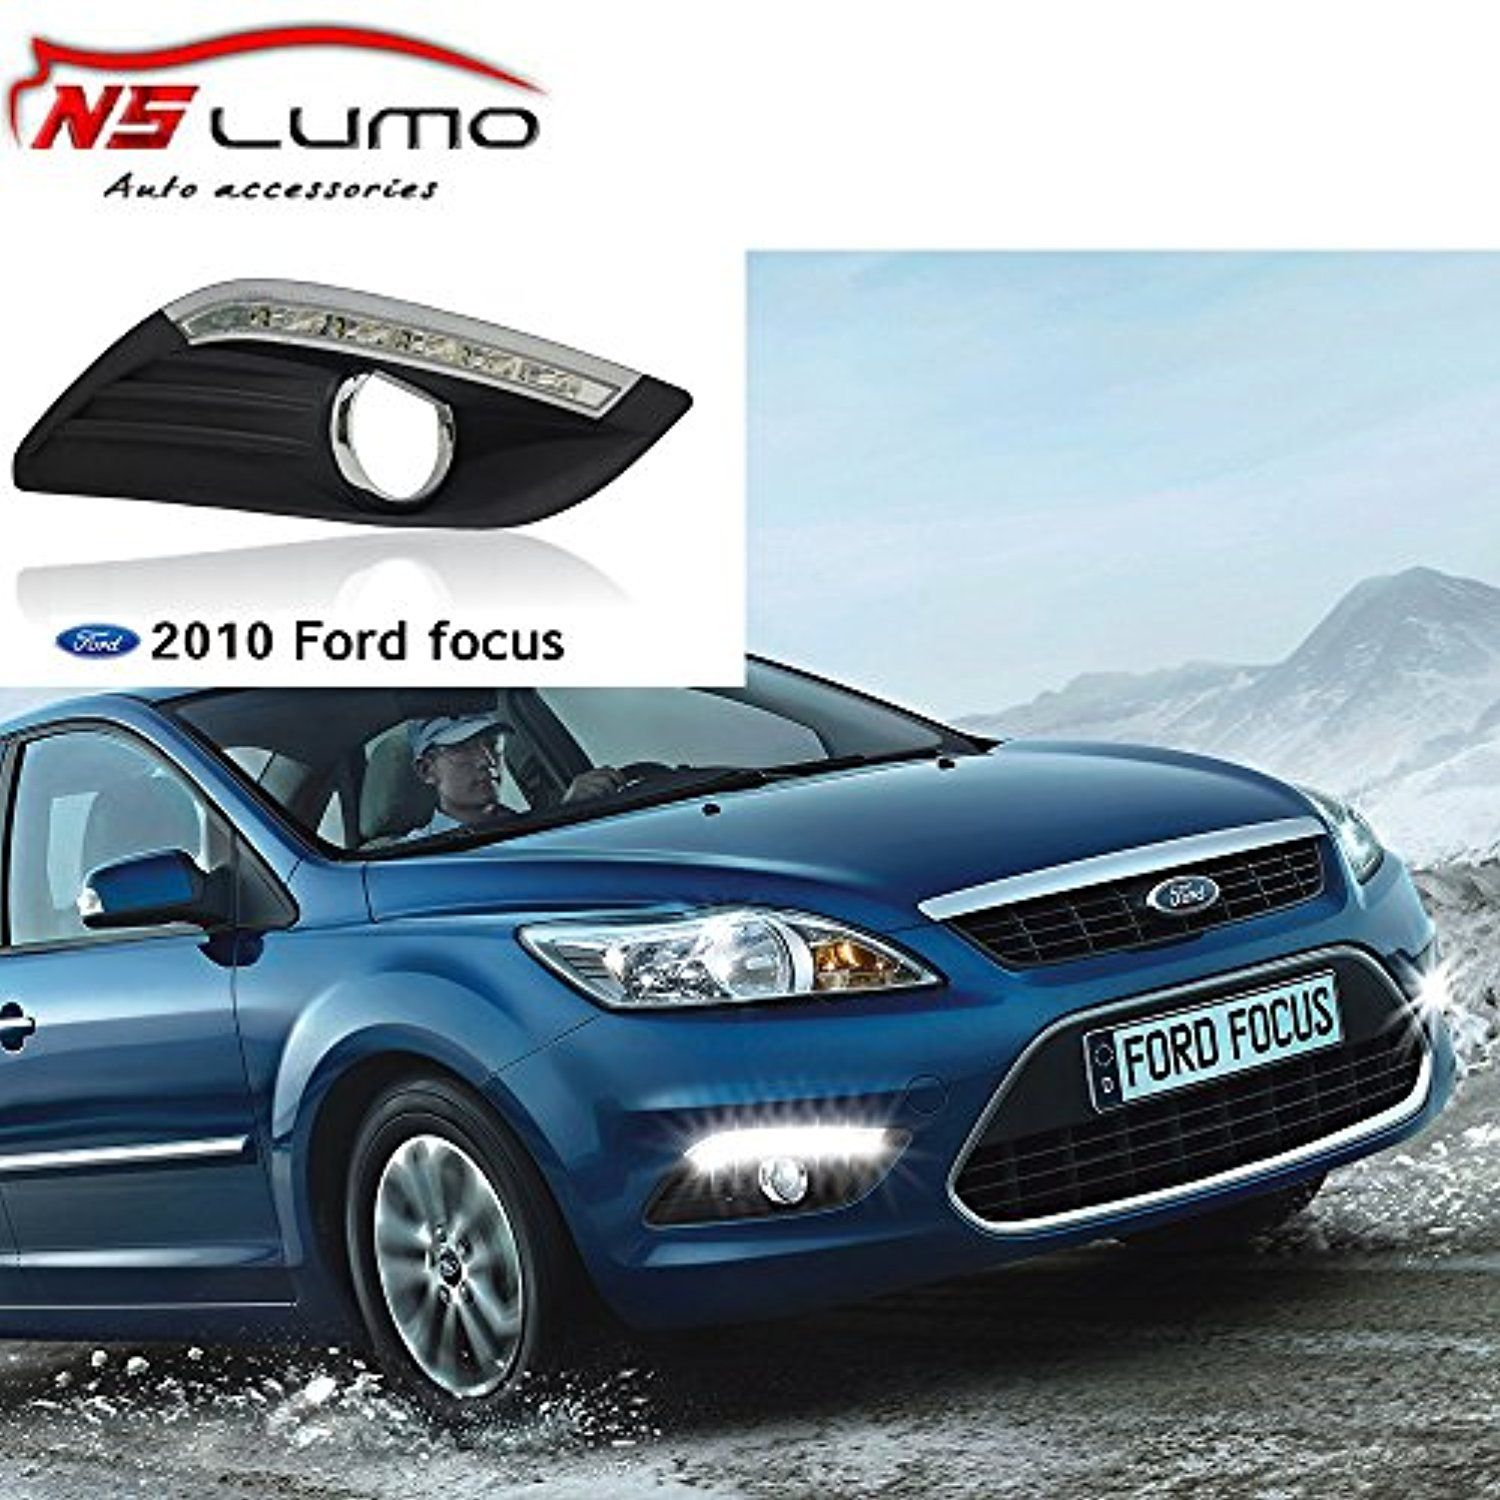 hight resolution of nslumo led fog light daytime running light drl driving lamp for ford focus sedan 2009 2011 high configuration awesome products selected by anna